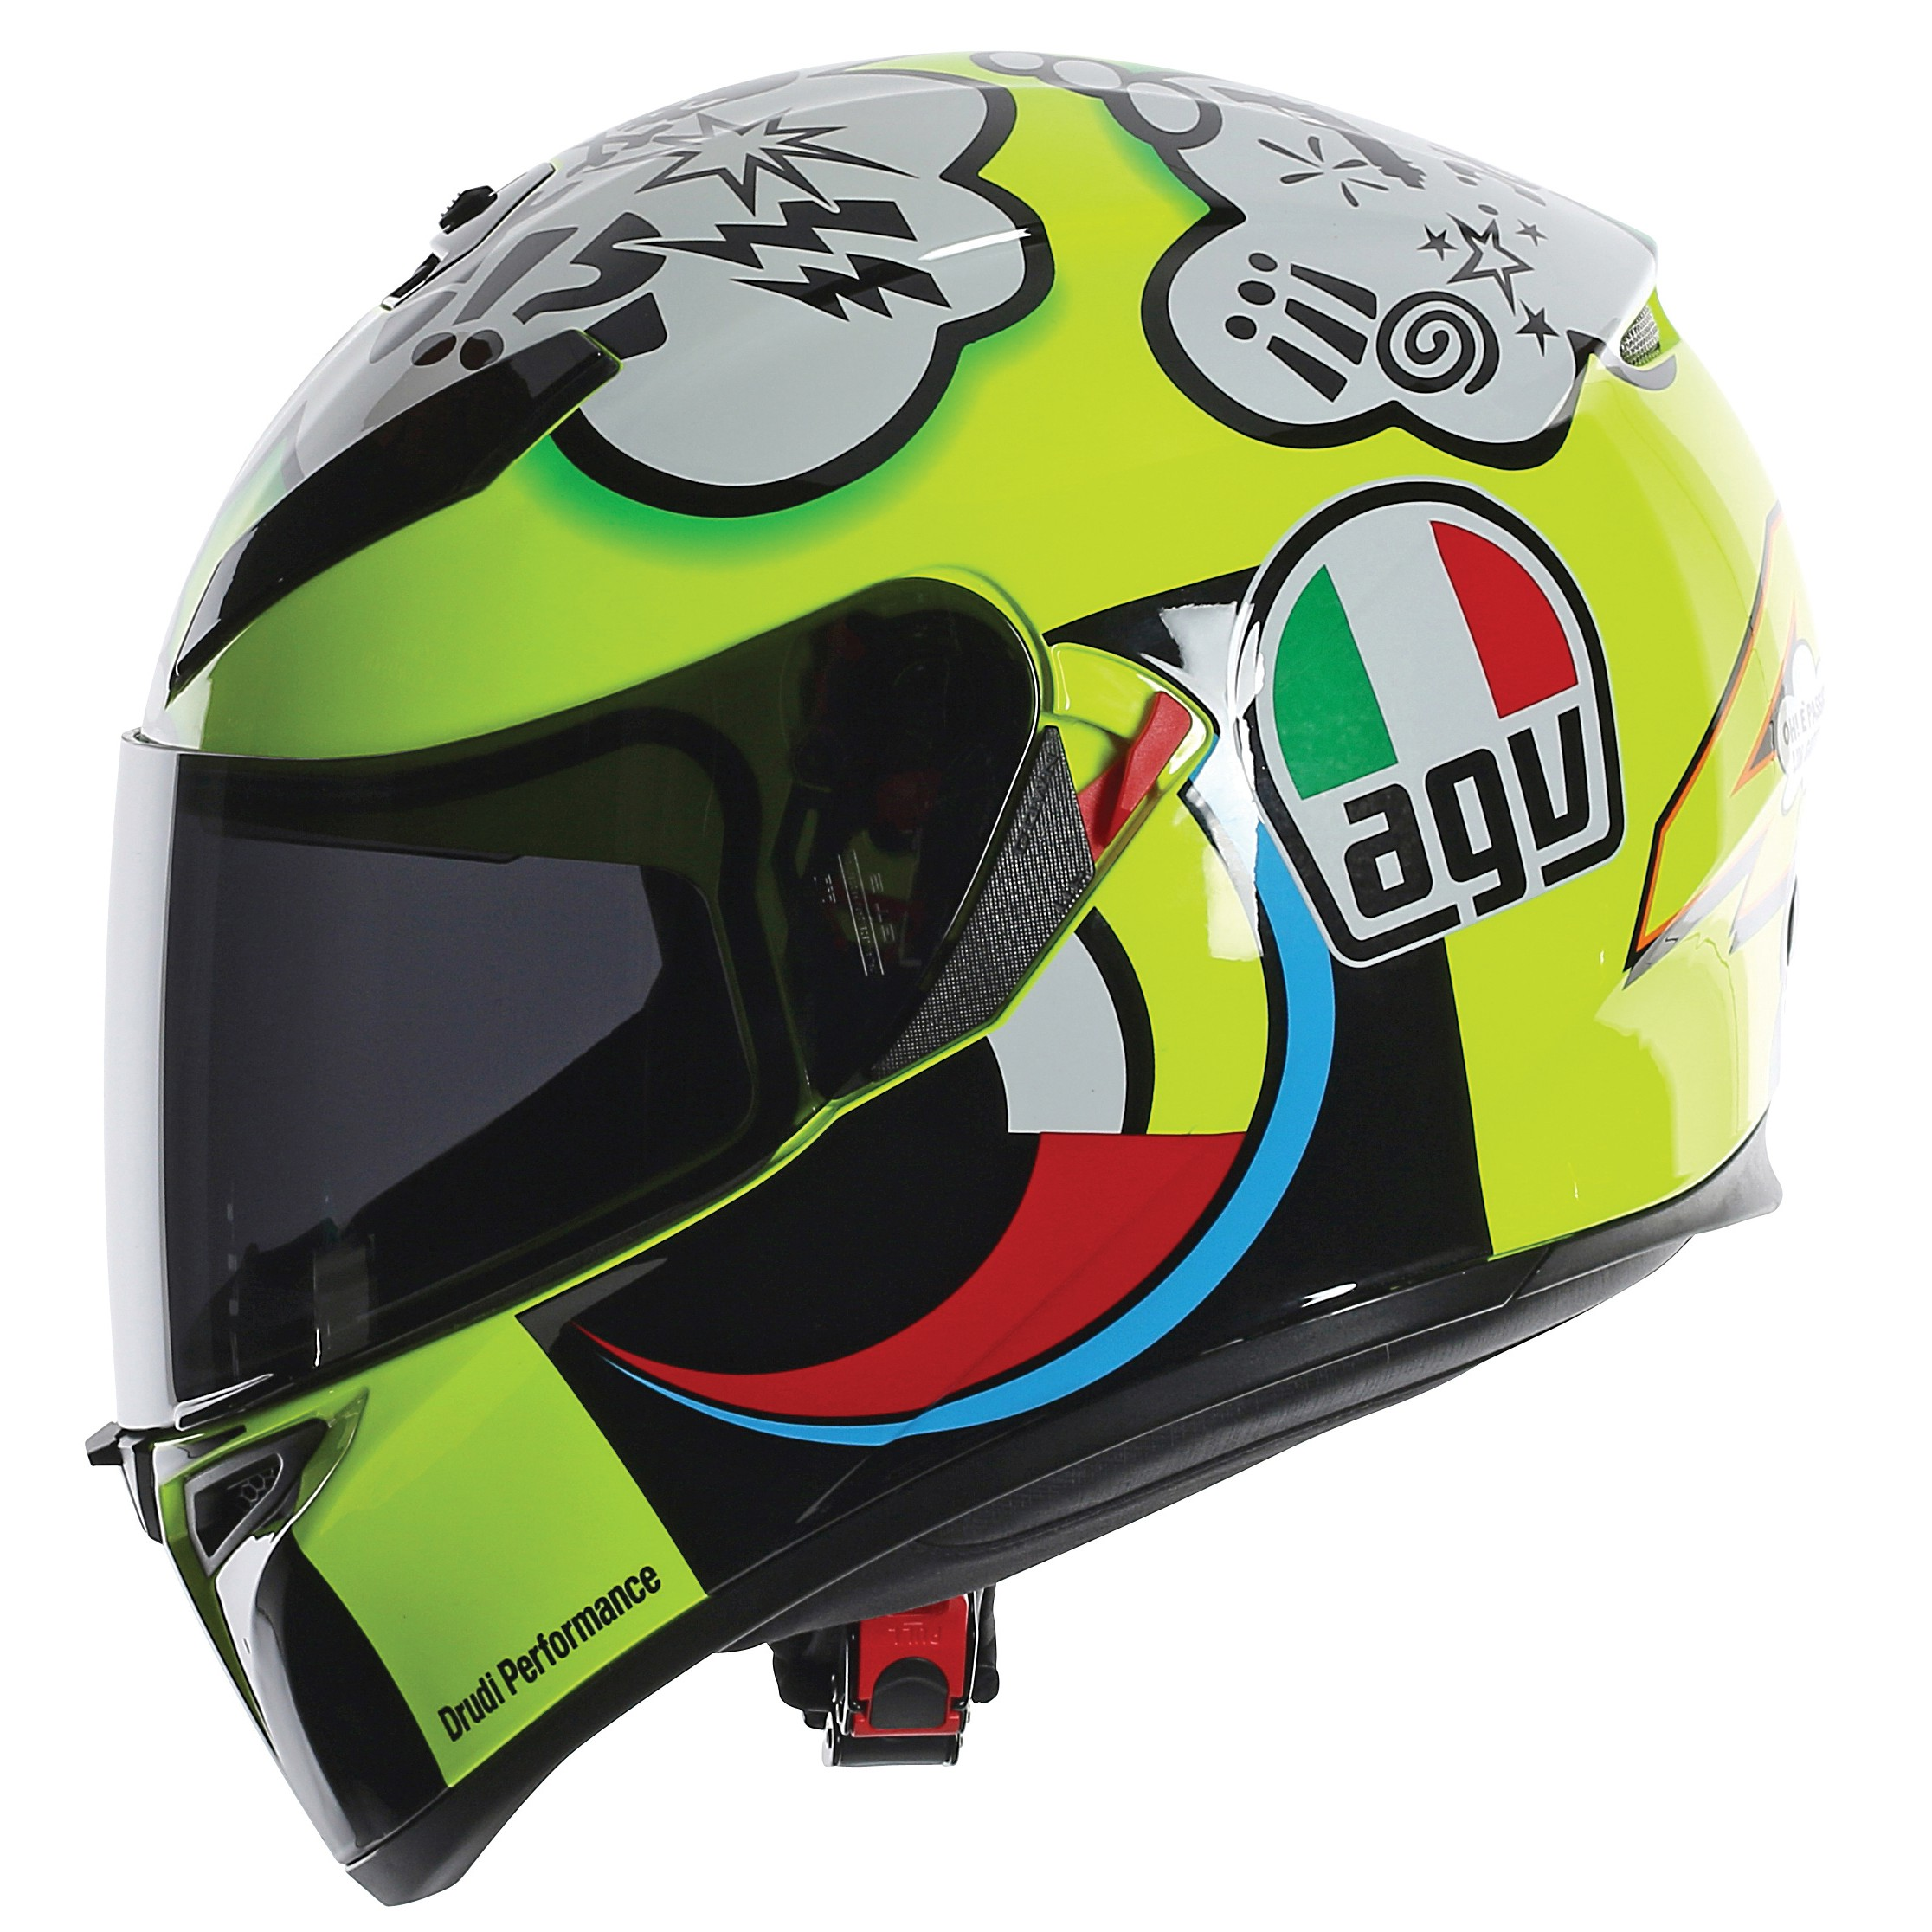 agv k3 sv rossi misano 2011 helmet rossi replica helmet. Black Bedroom Furniture Sets. Home Design Ideas